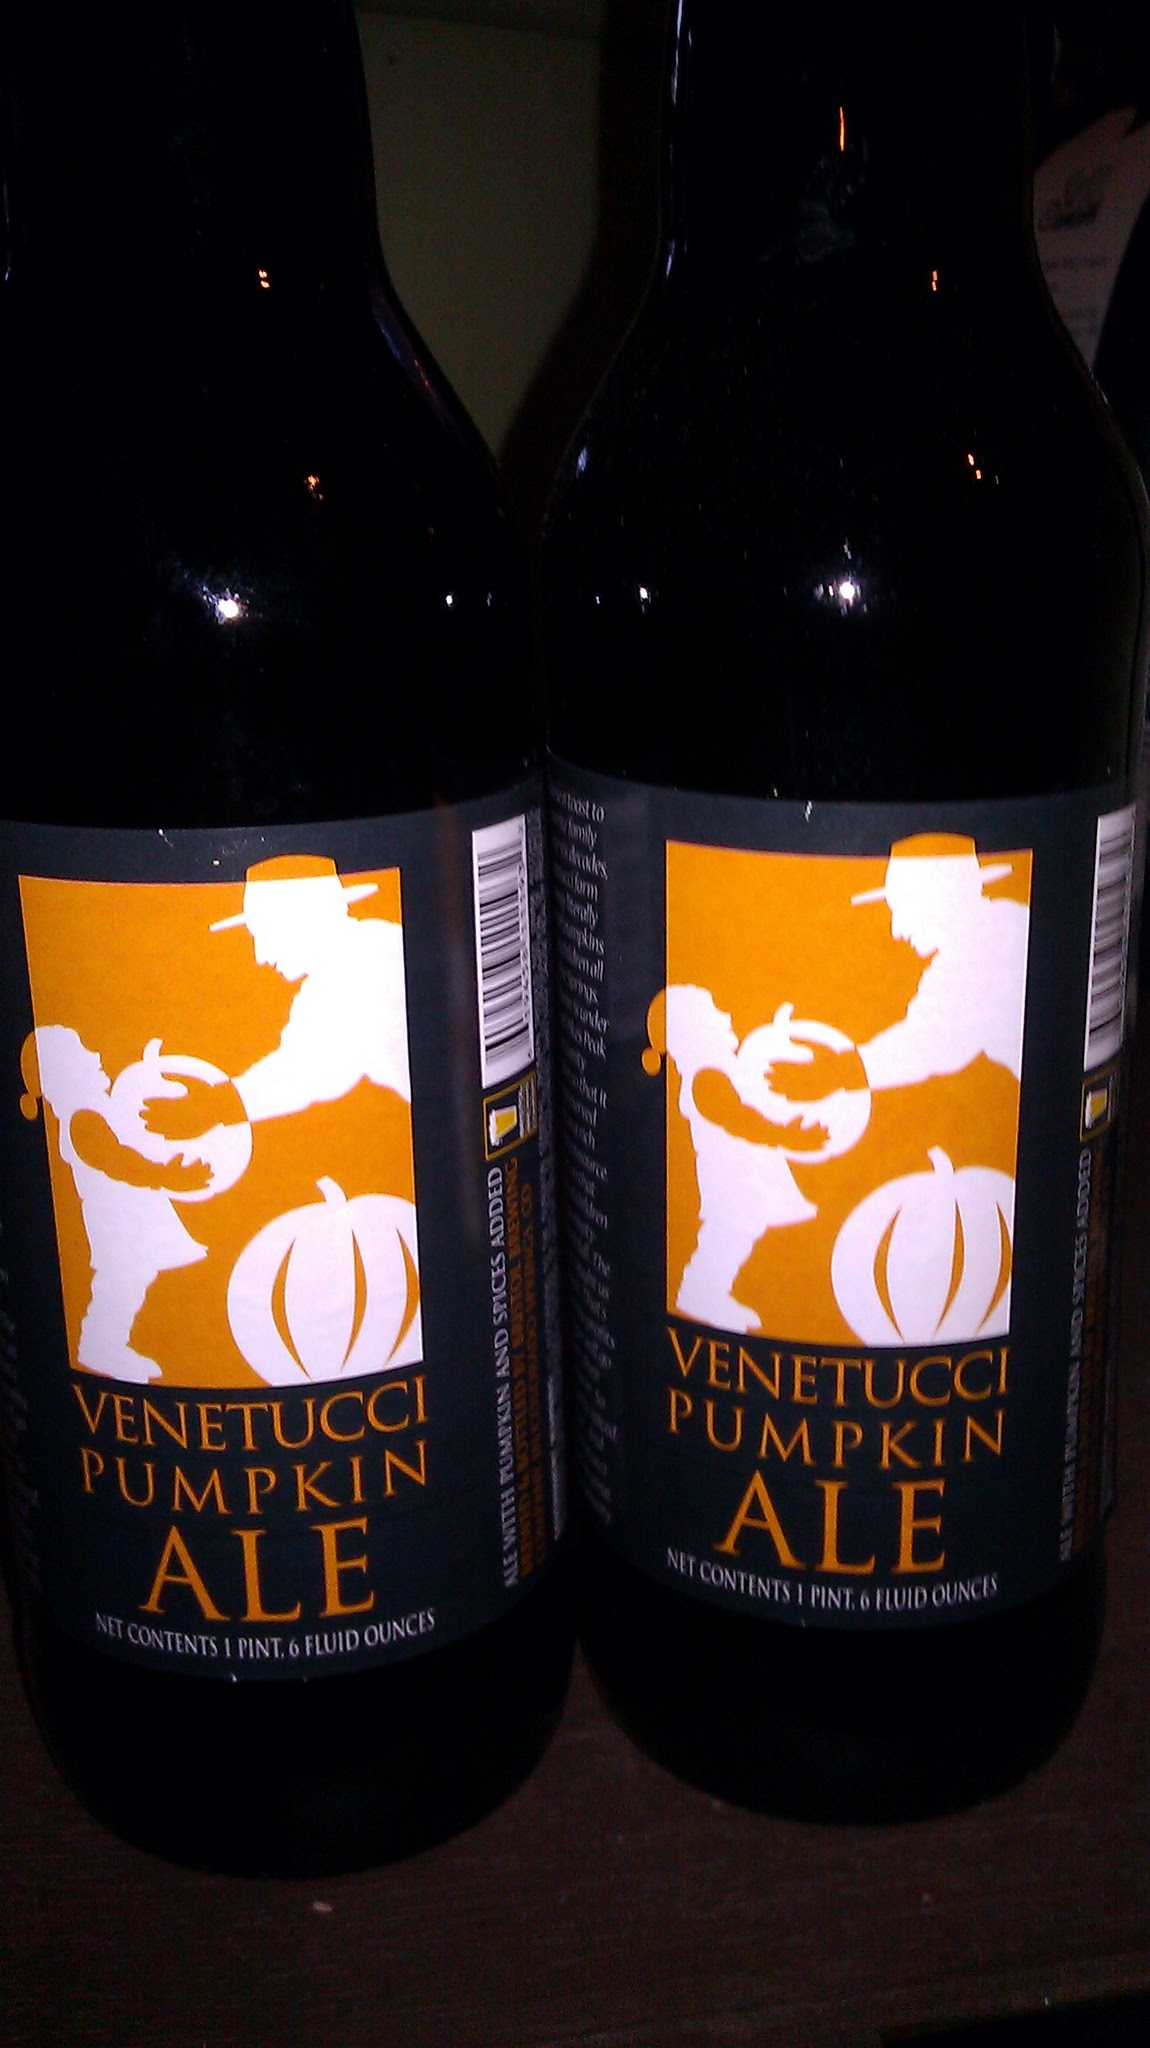 Venetucci Pumpkin Ale, Venetucci Farm, Bristol Brewing Company, Rocky Mountain Food Report, Front range food news